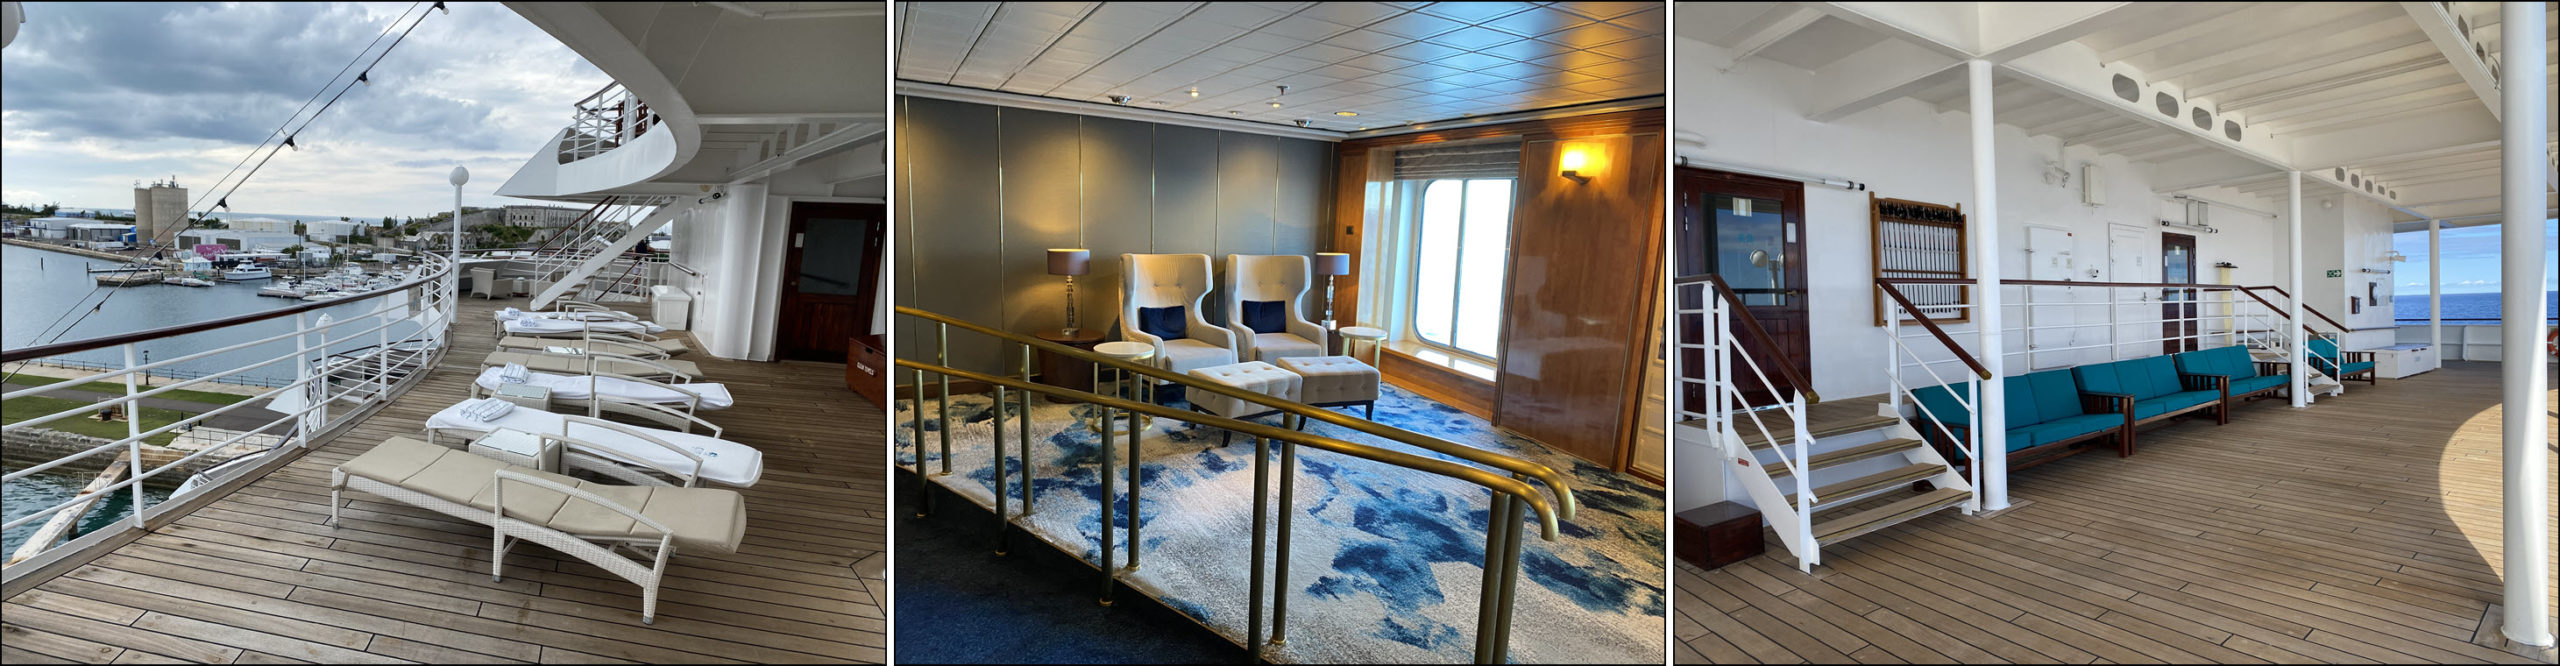 Small lounge areas on the Crystal Symphony